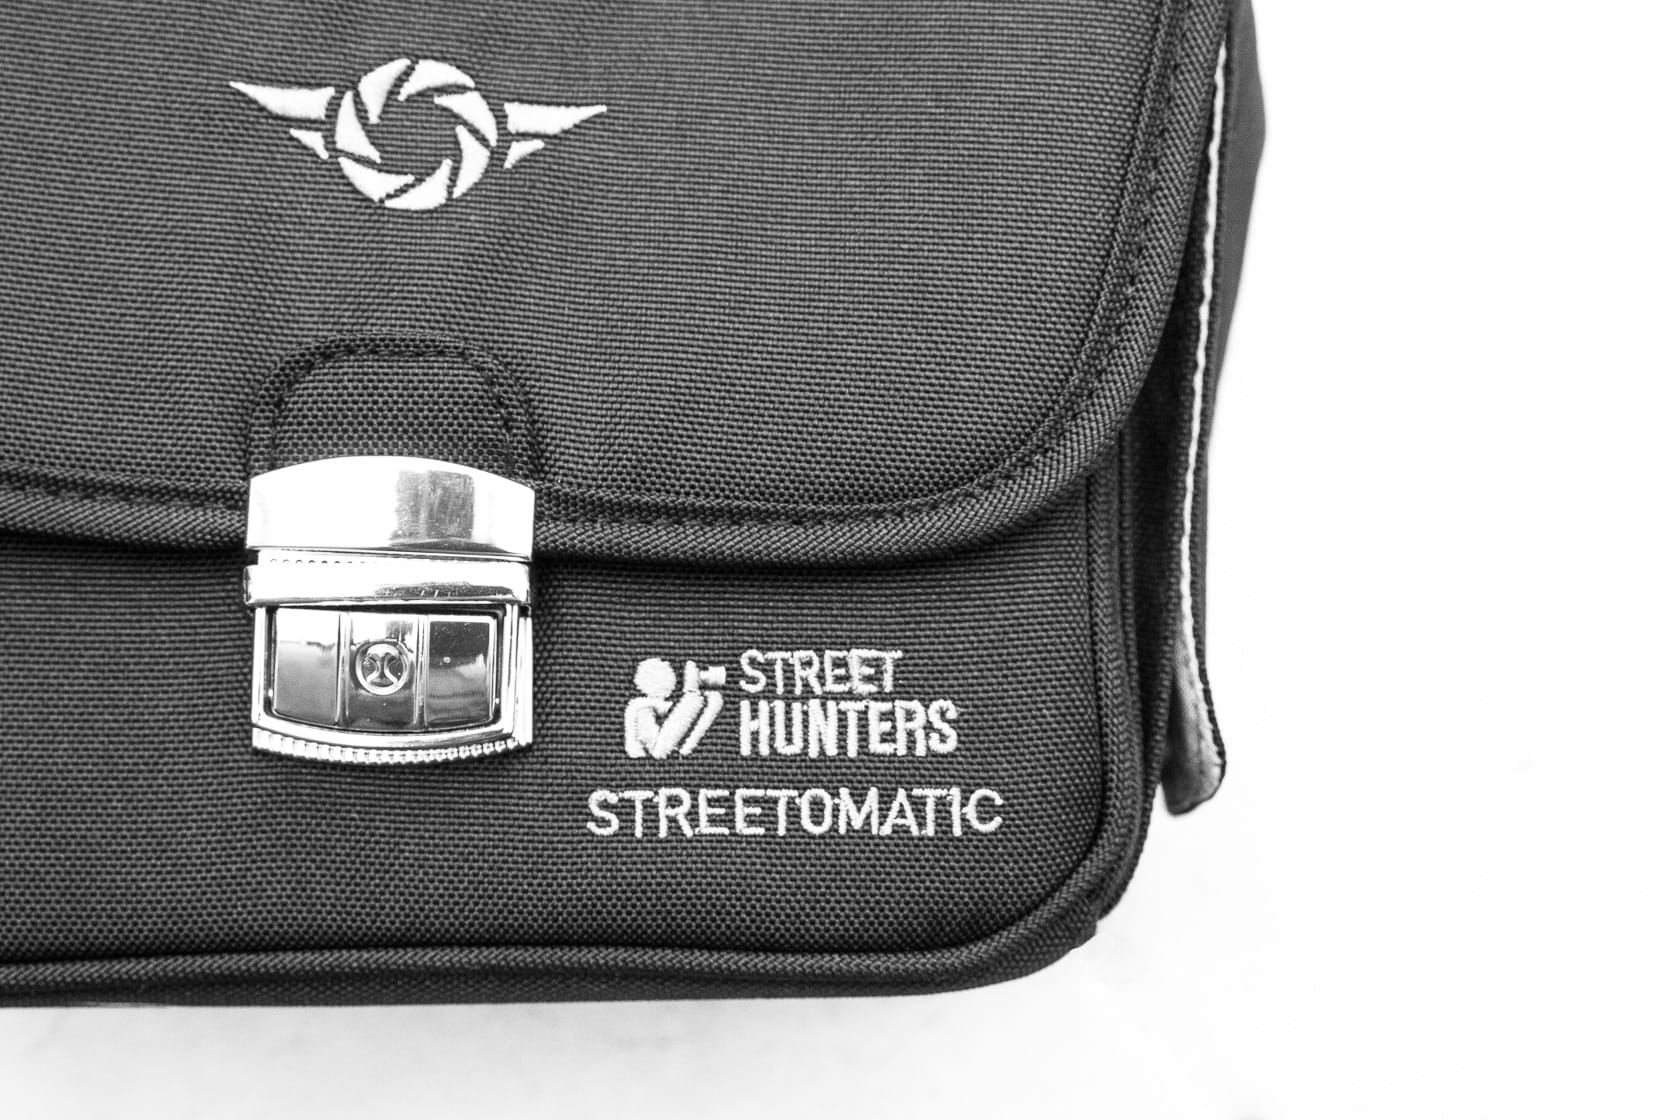 streetomatic-streethunters-edition-4